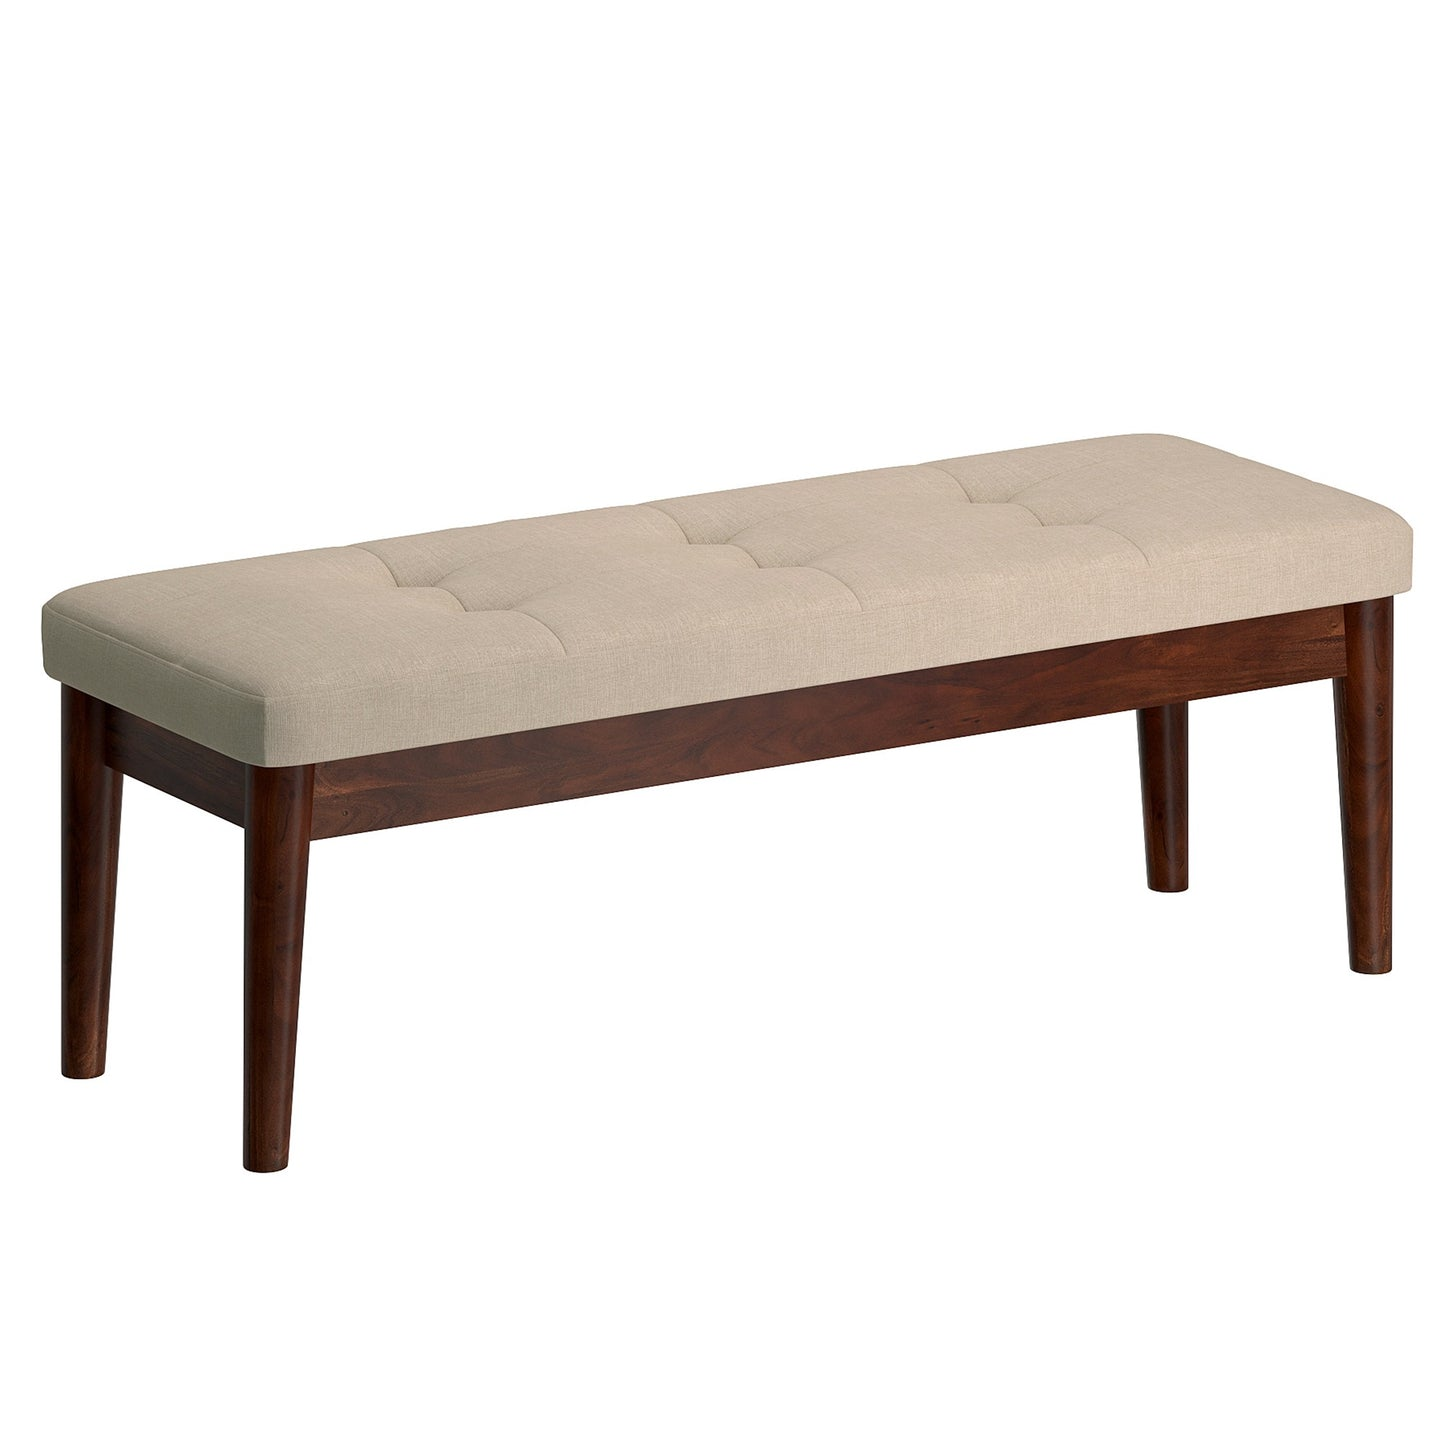 Leanne Bench in Beige